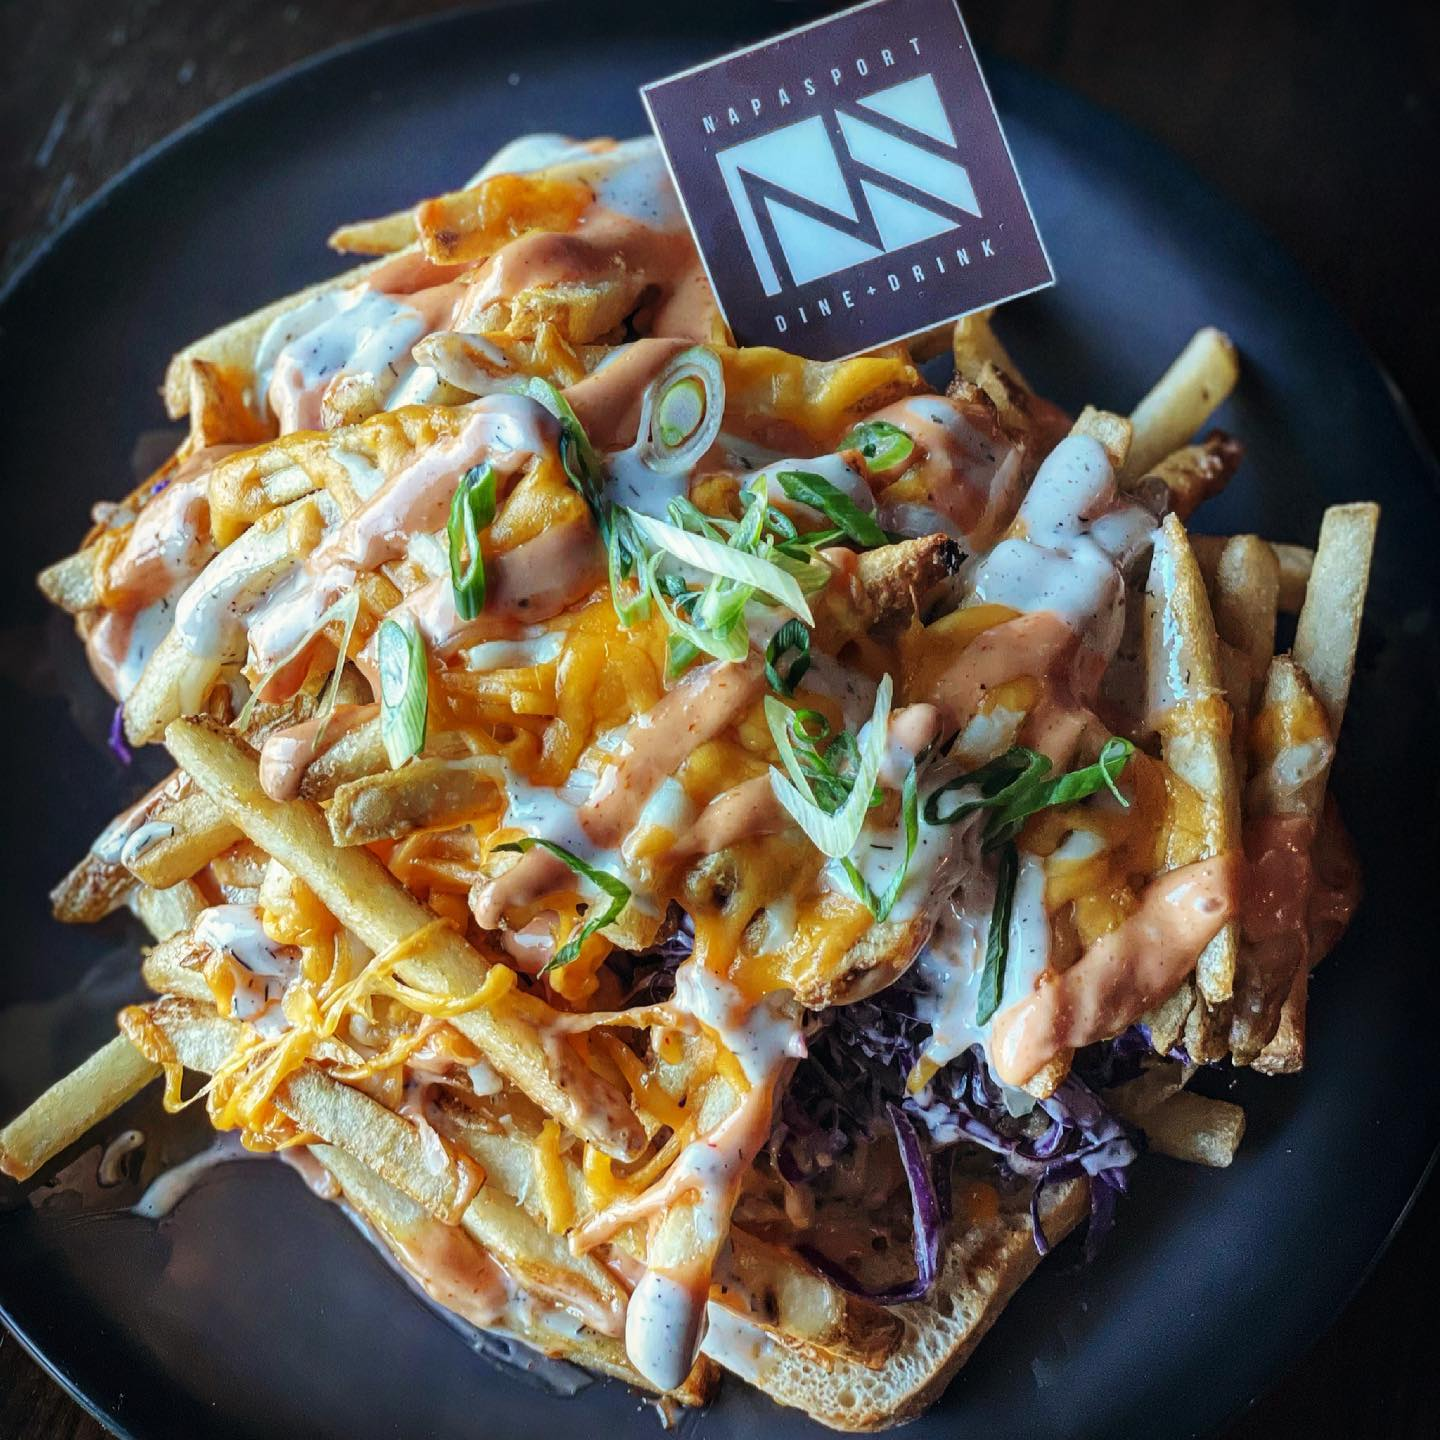 loaded fries topped with cheese and chives